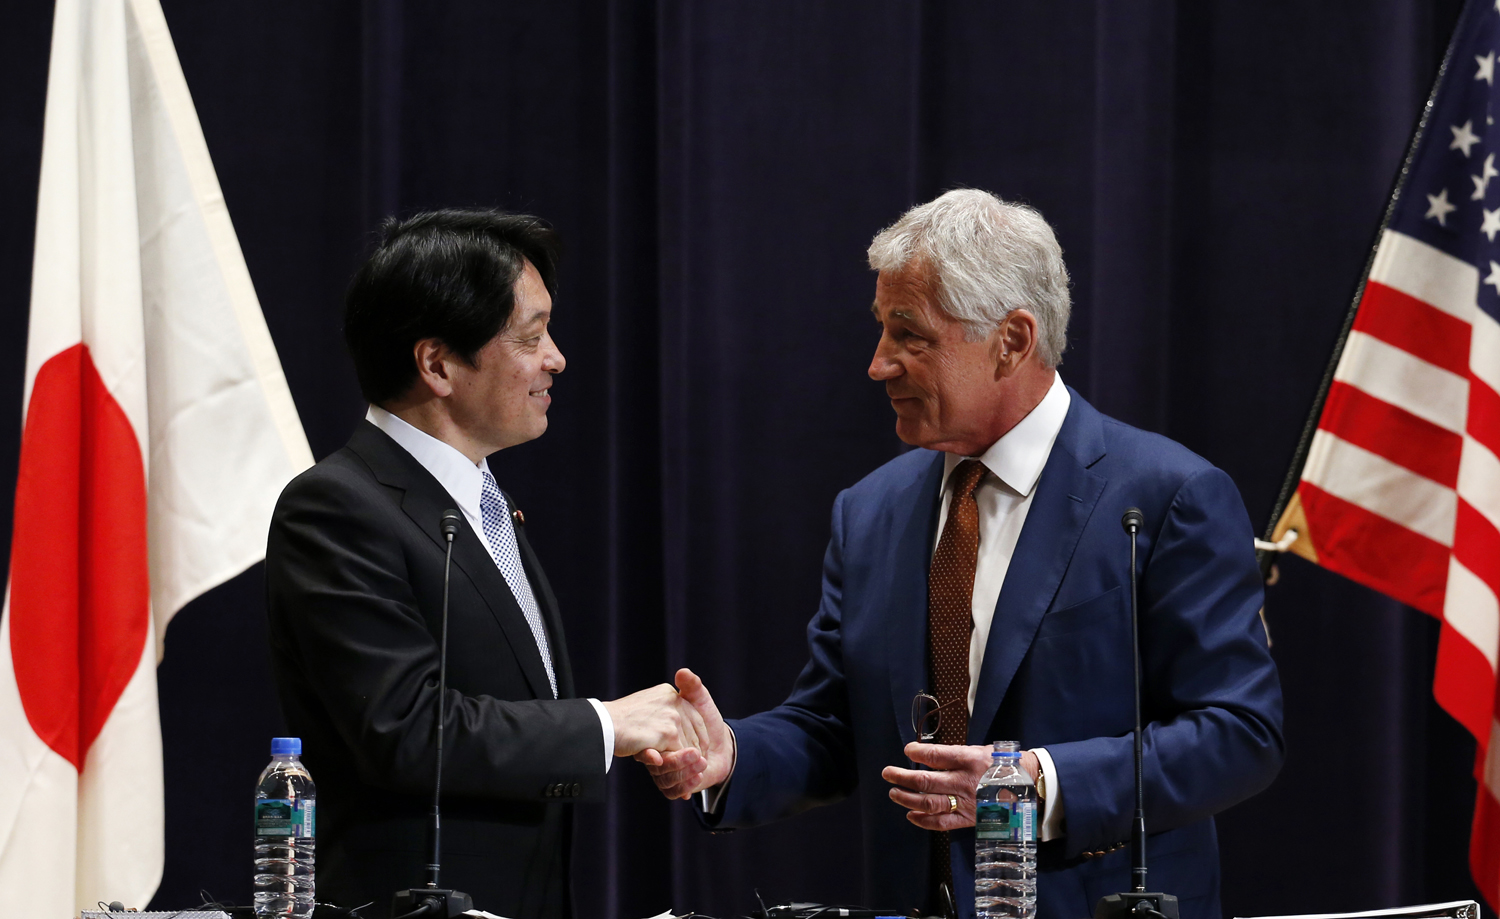 From right: U.S. Secretary of Defense Chuck Hagel shakes hands with his Japanese counterpart Itsunori Onodera at the end of their joint news conference at the Defense Ministry in Tokyo on April 6, 2014.